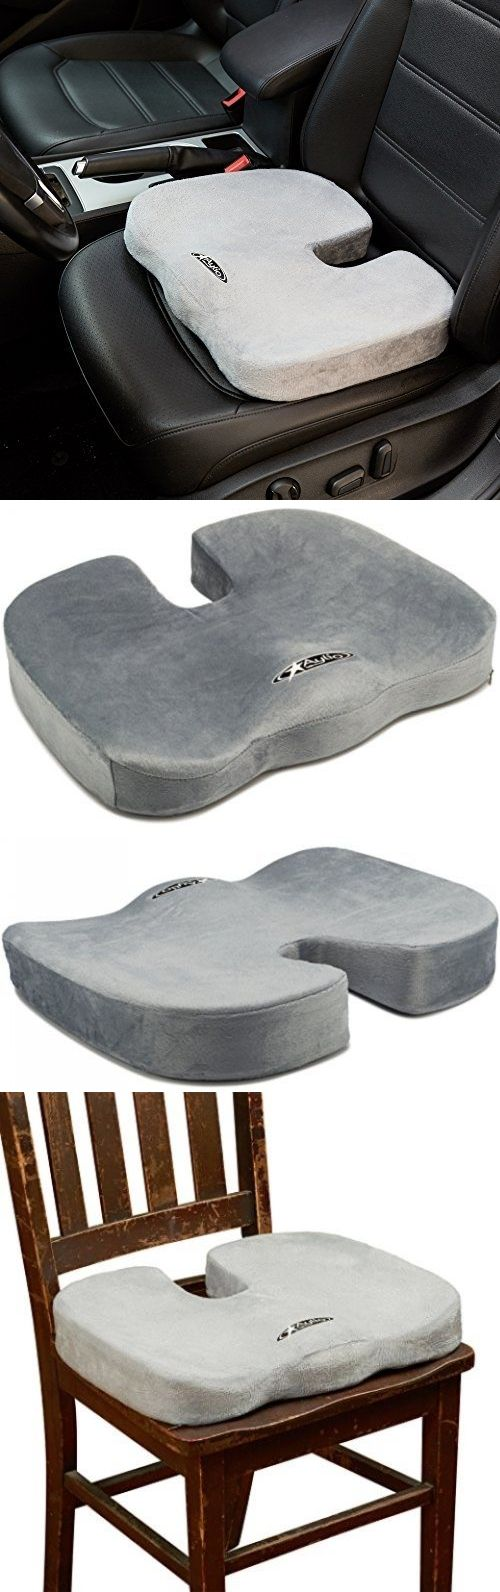 Massage Pillows and Bolsters: Orthopedic Car Seat Cushion Foam Chair Pain Relief Office Back Tailbone Travel -> BUY IT NOW ONLY: $54.99 on eBay!